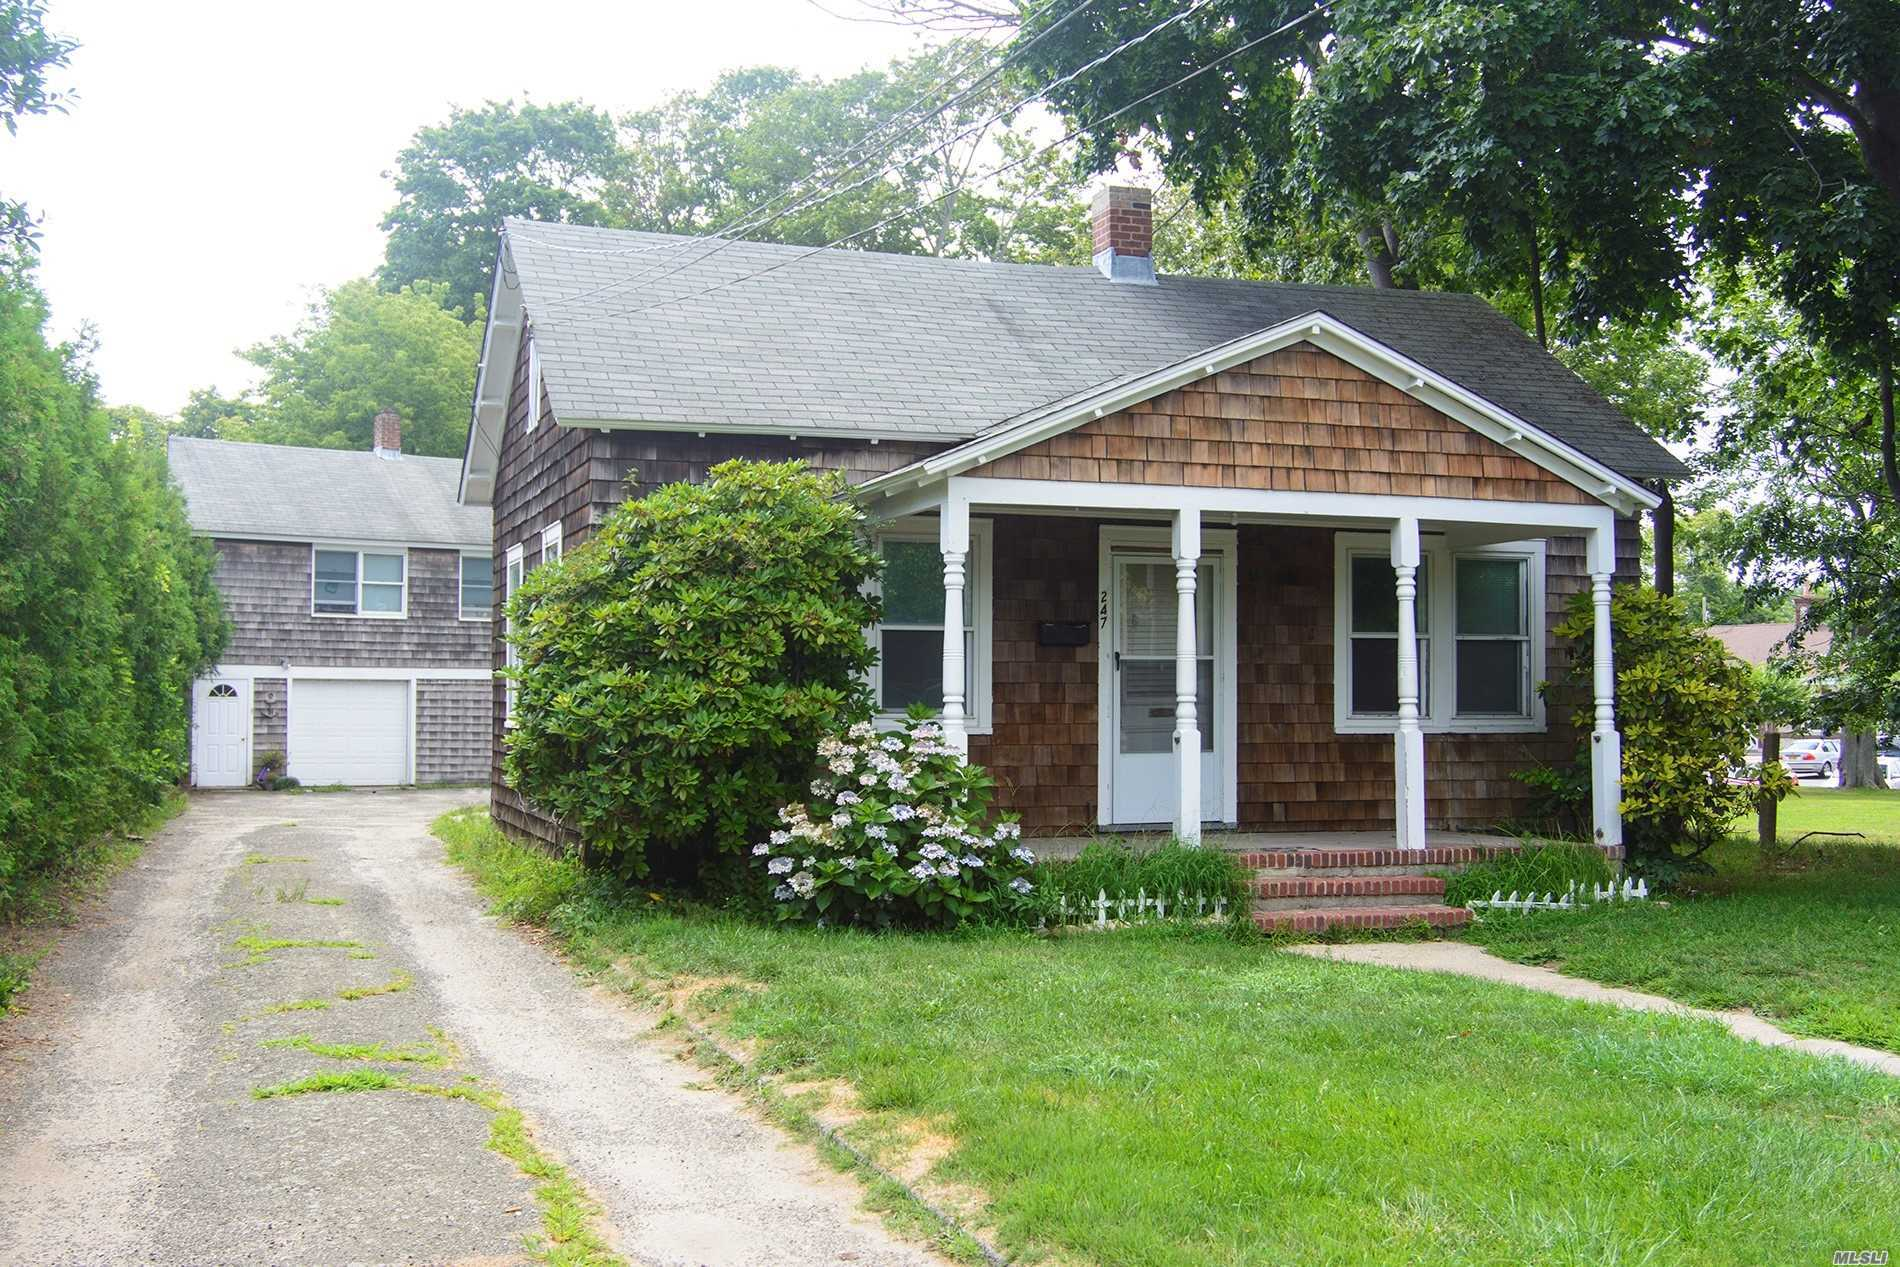 Improved Price!! Motivated Seller!! Literally Steps Away From The Lirr And Hugged By Surrounding Trees, Sits This Ample Village Home, In Need Of Tlc, With An Accompanying Building That Offers A Garage And Legal 2nd Floor Apartment W/Tenant Who Is Prepared To Depart Upon Purchase, But Is Willing To Stay If Agreed Upon With Purchaser. Minutes Away From Village Shopping, Eateries And Entertainment. Potential Pool Setbacks 20' Side And Rear. Significant Potential And A Commuter's Dream.